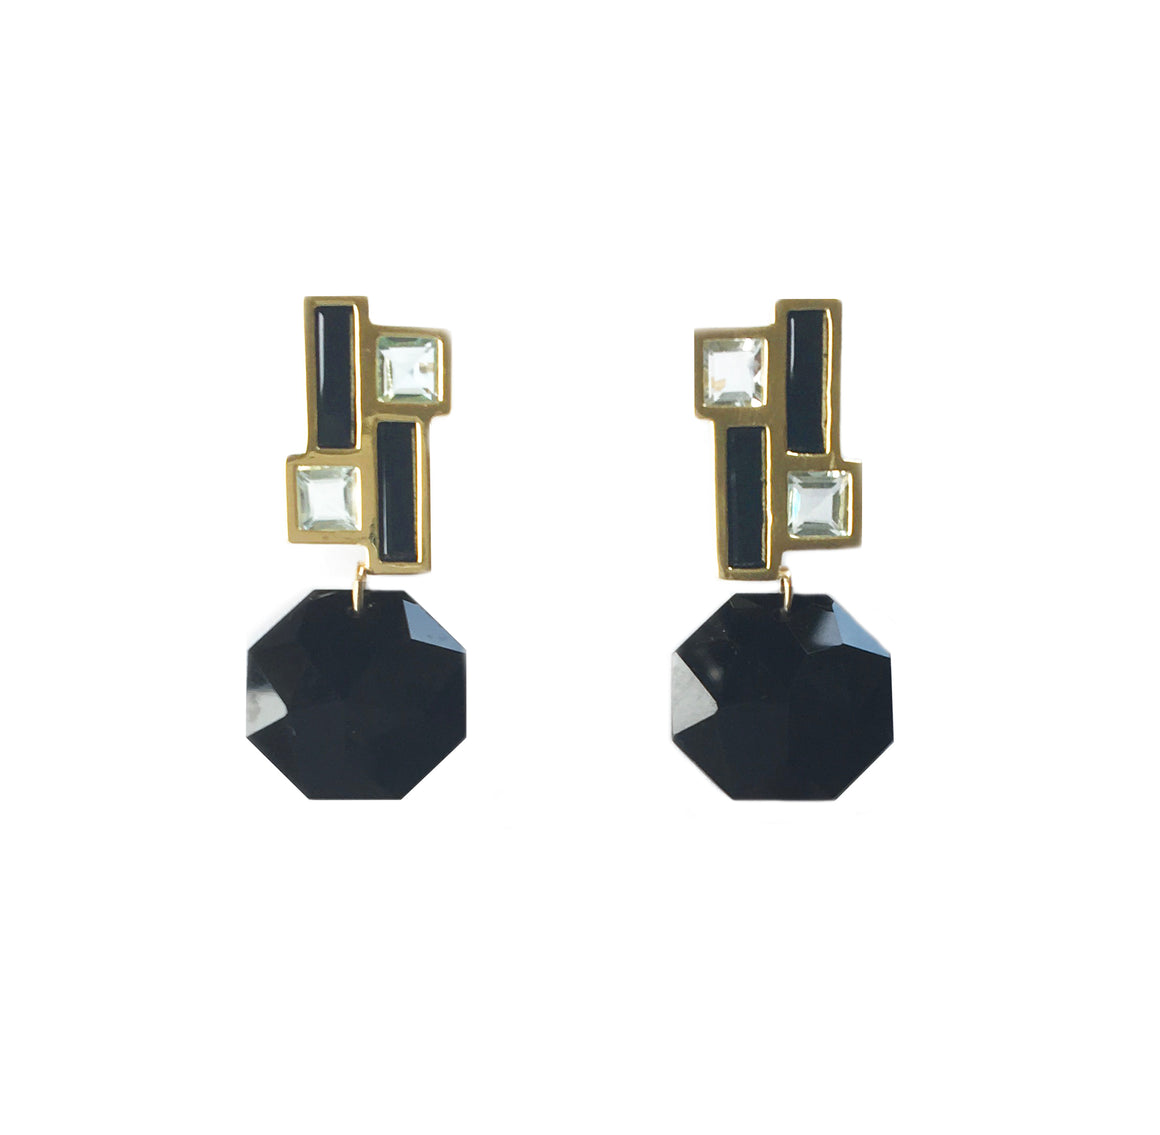 Mondrian Earrings with Faceted Onyx